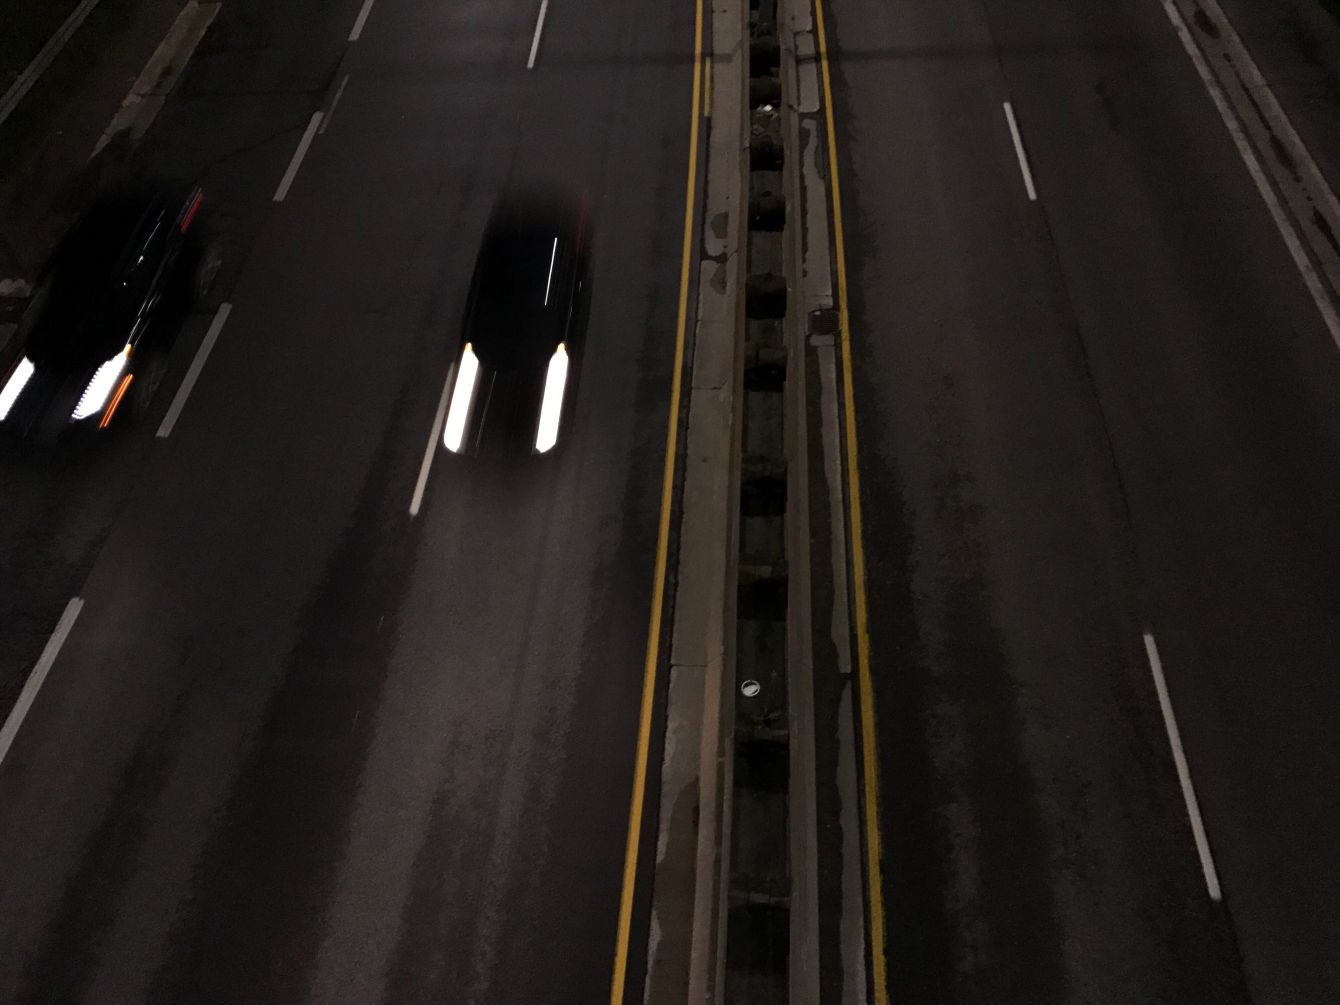 Click thumbnail to see details about photo - Looking Down Overpass at Night Photograph